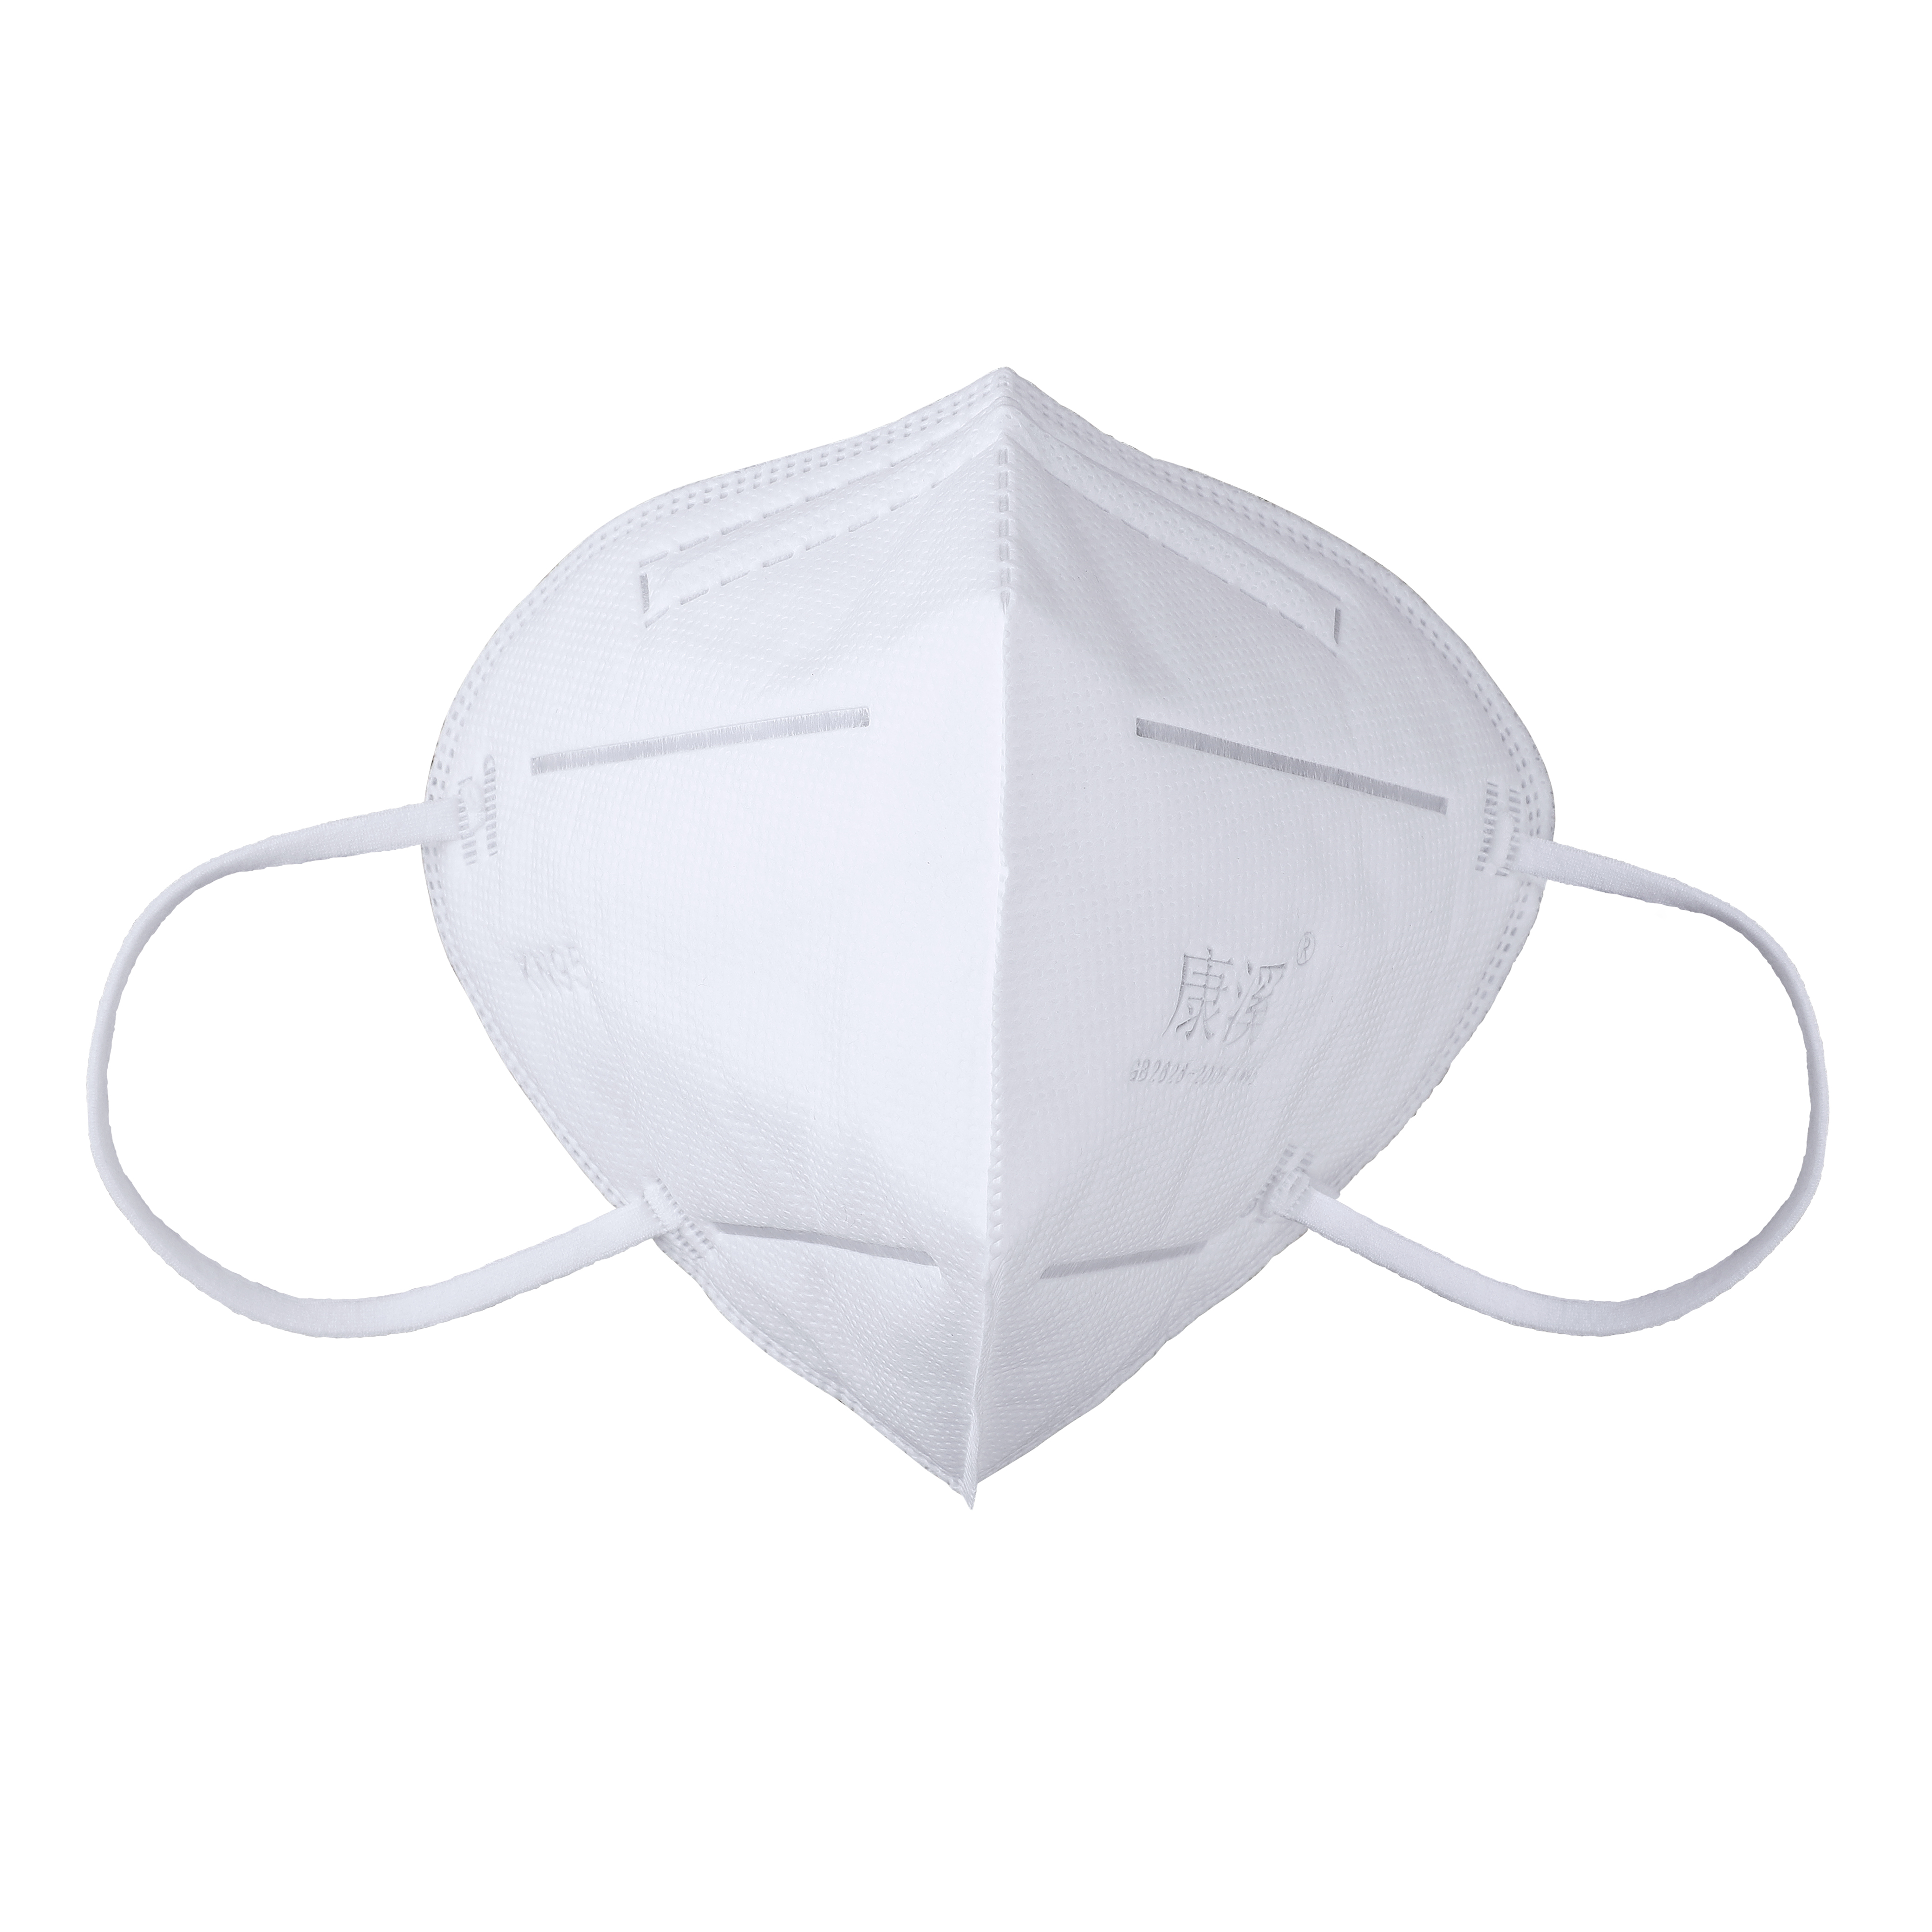 1pc KN95 PM 2.5 Respirator Nonwoven Anti Dust Musk KN95 Mouth Face Mask Anti Virus KN95 Respirator Safety Protective Mask